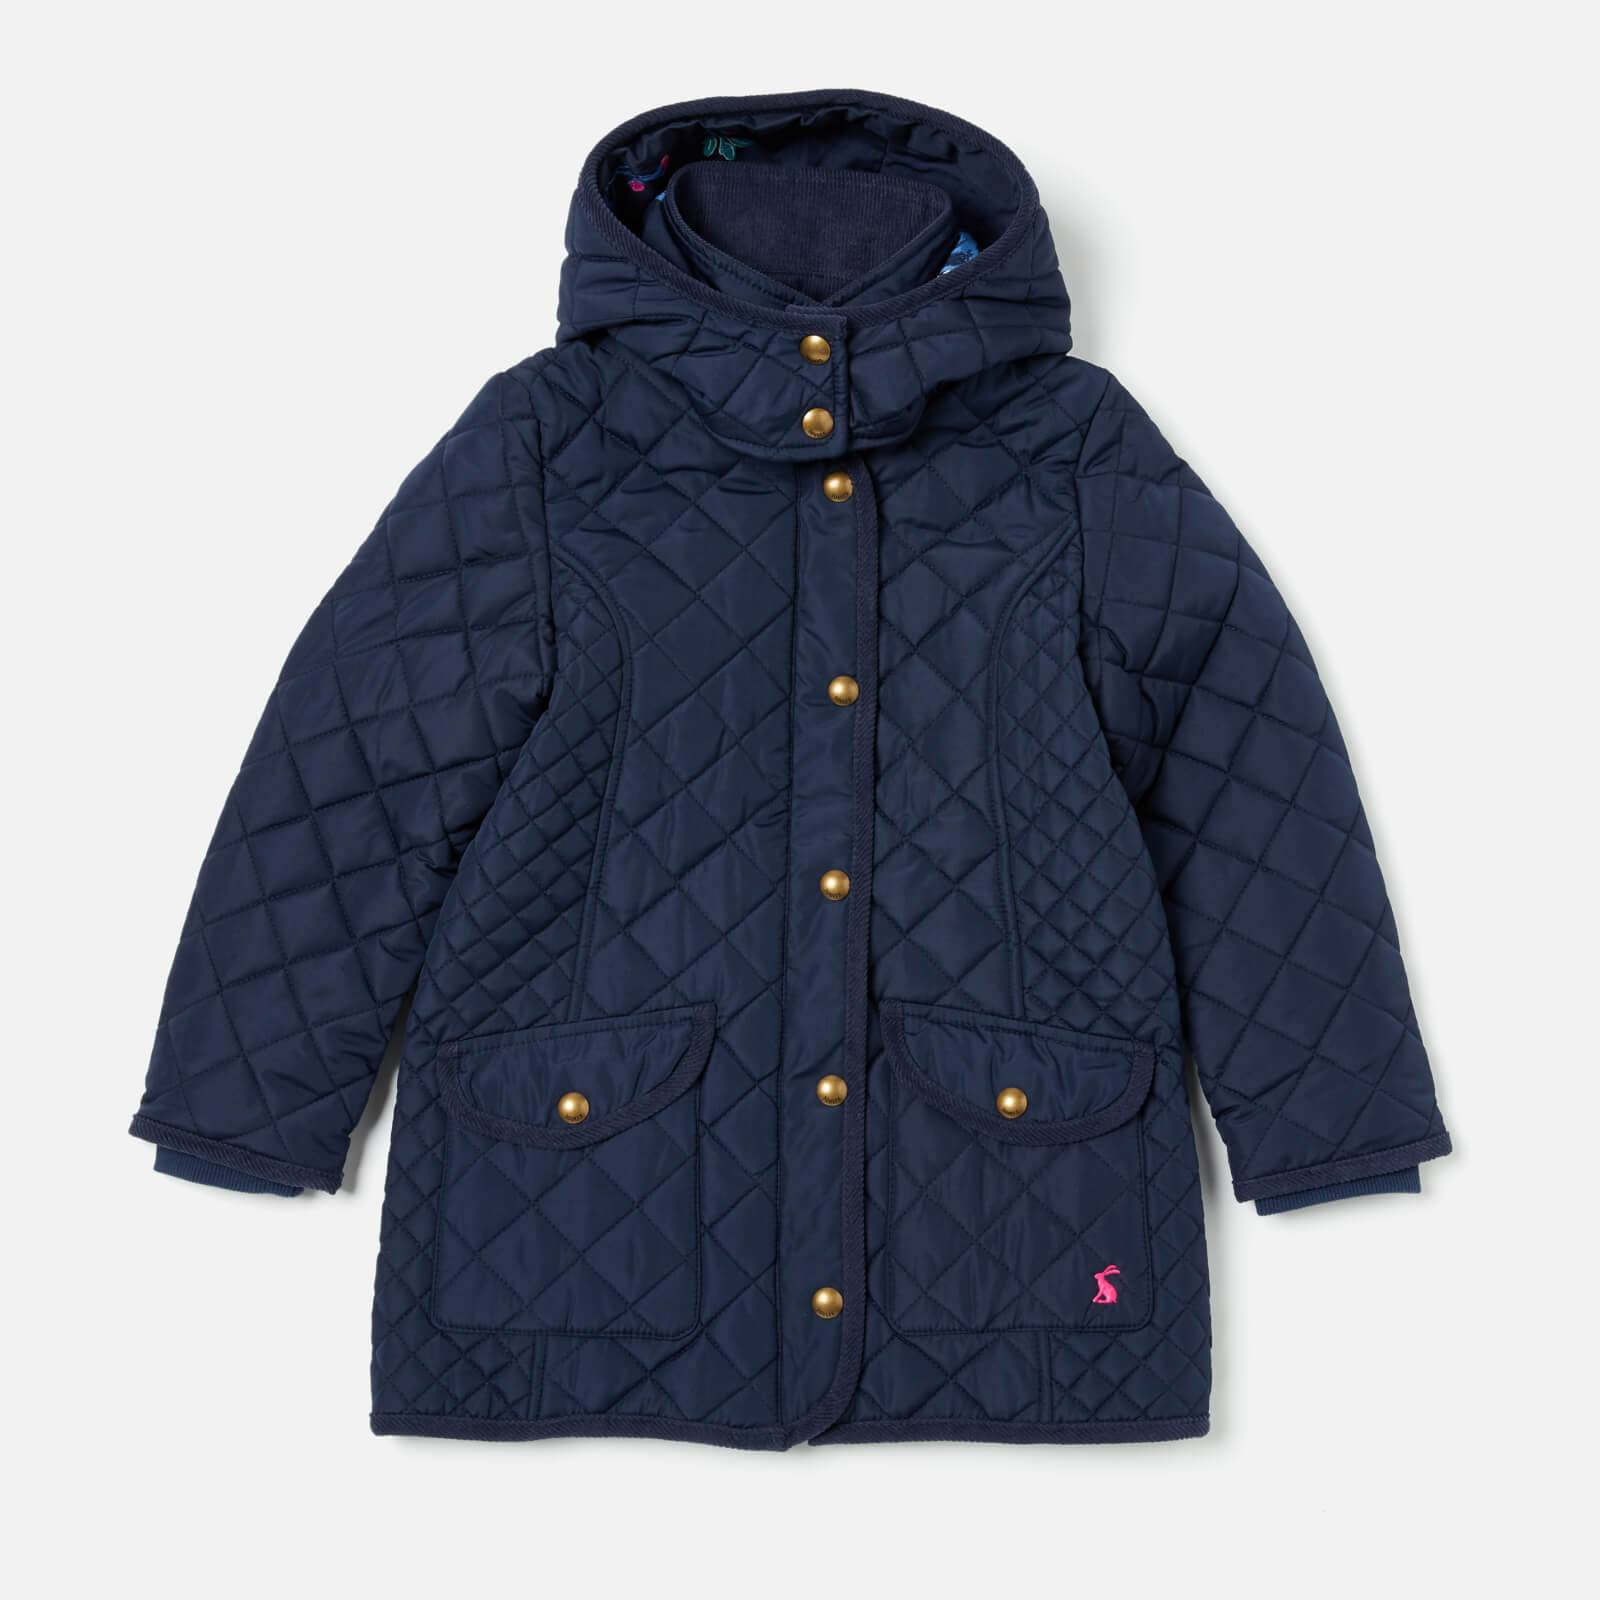 Joules Girls' Newdale Quilted Coat - French Navy - 5 Years - Blue